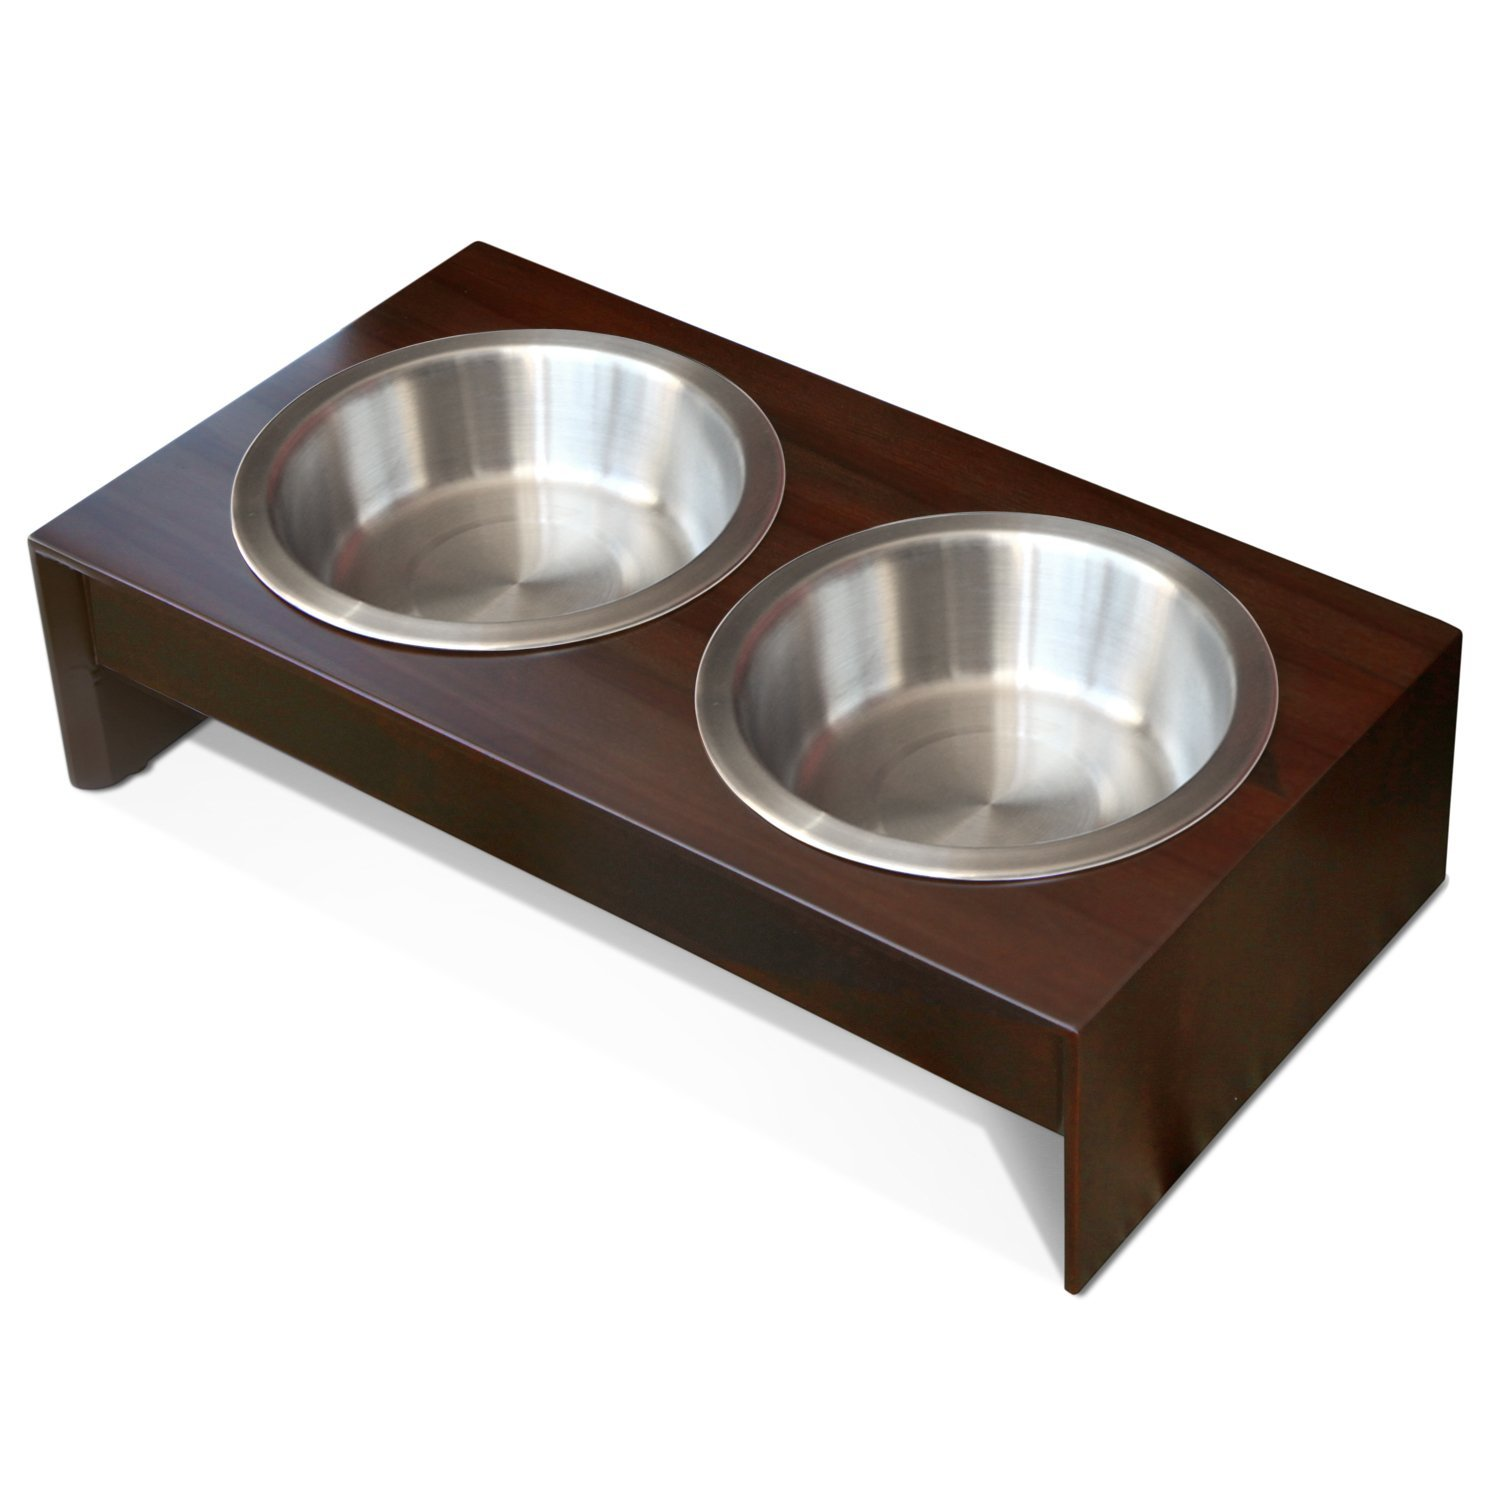 Elevated Dog Bowls | Elevated Large Dog Bowls | Raised Cat Bowls